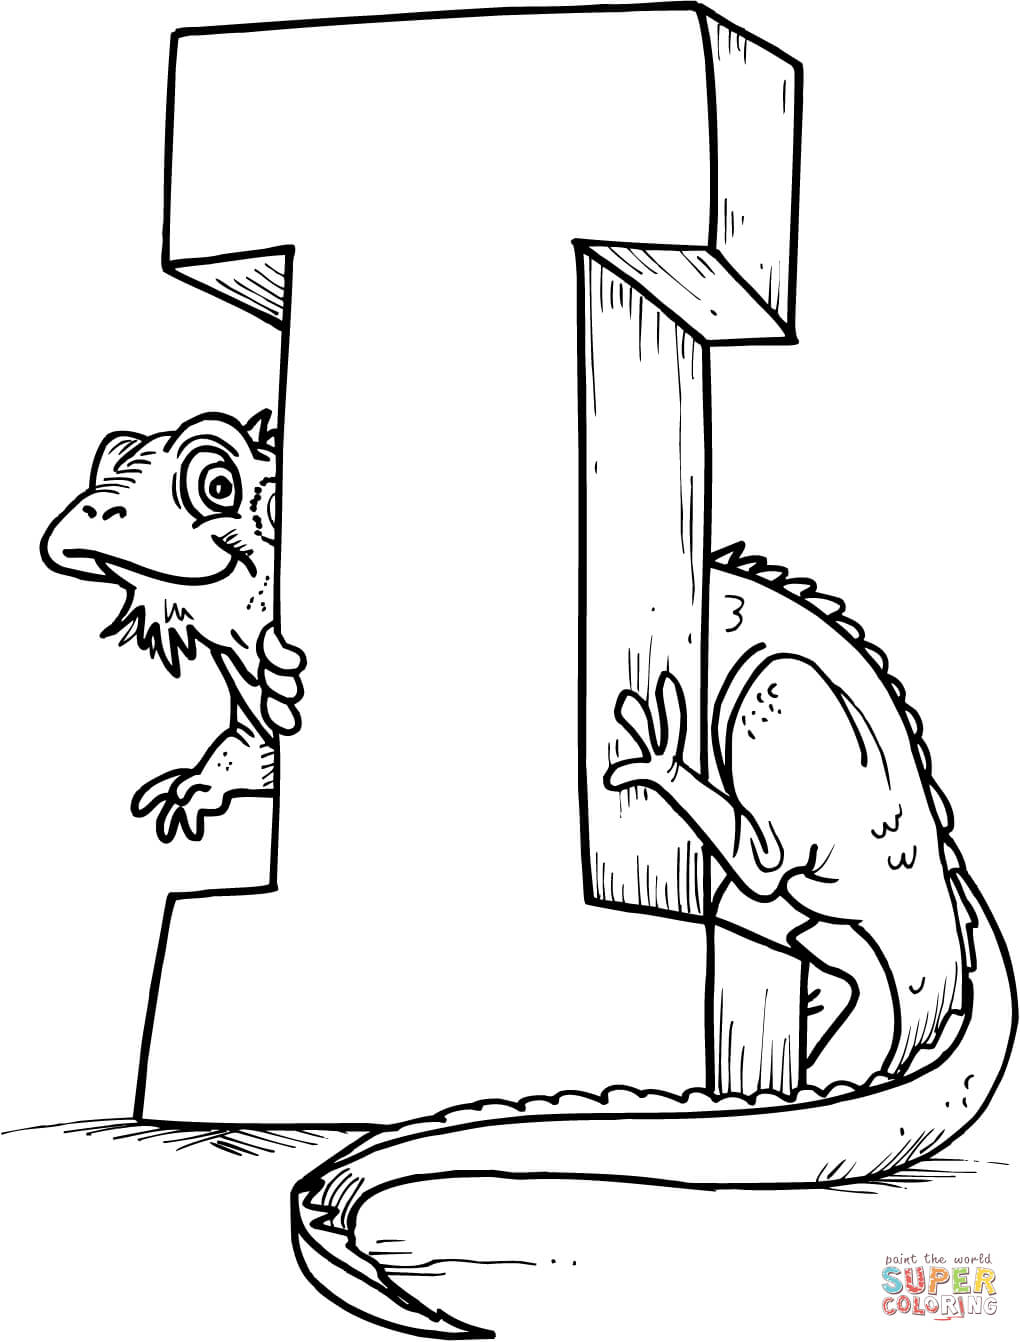 Letter I Coloring Pages - Coloring Home